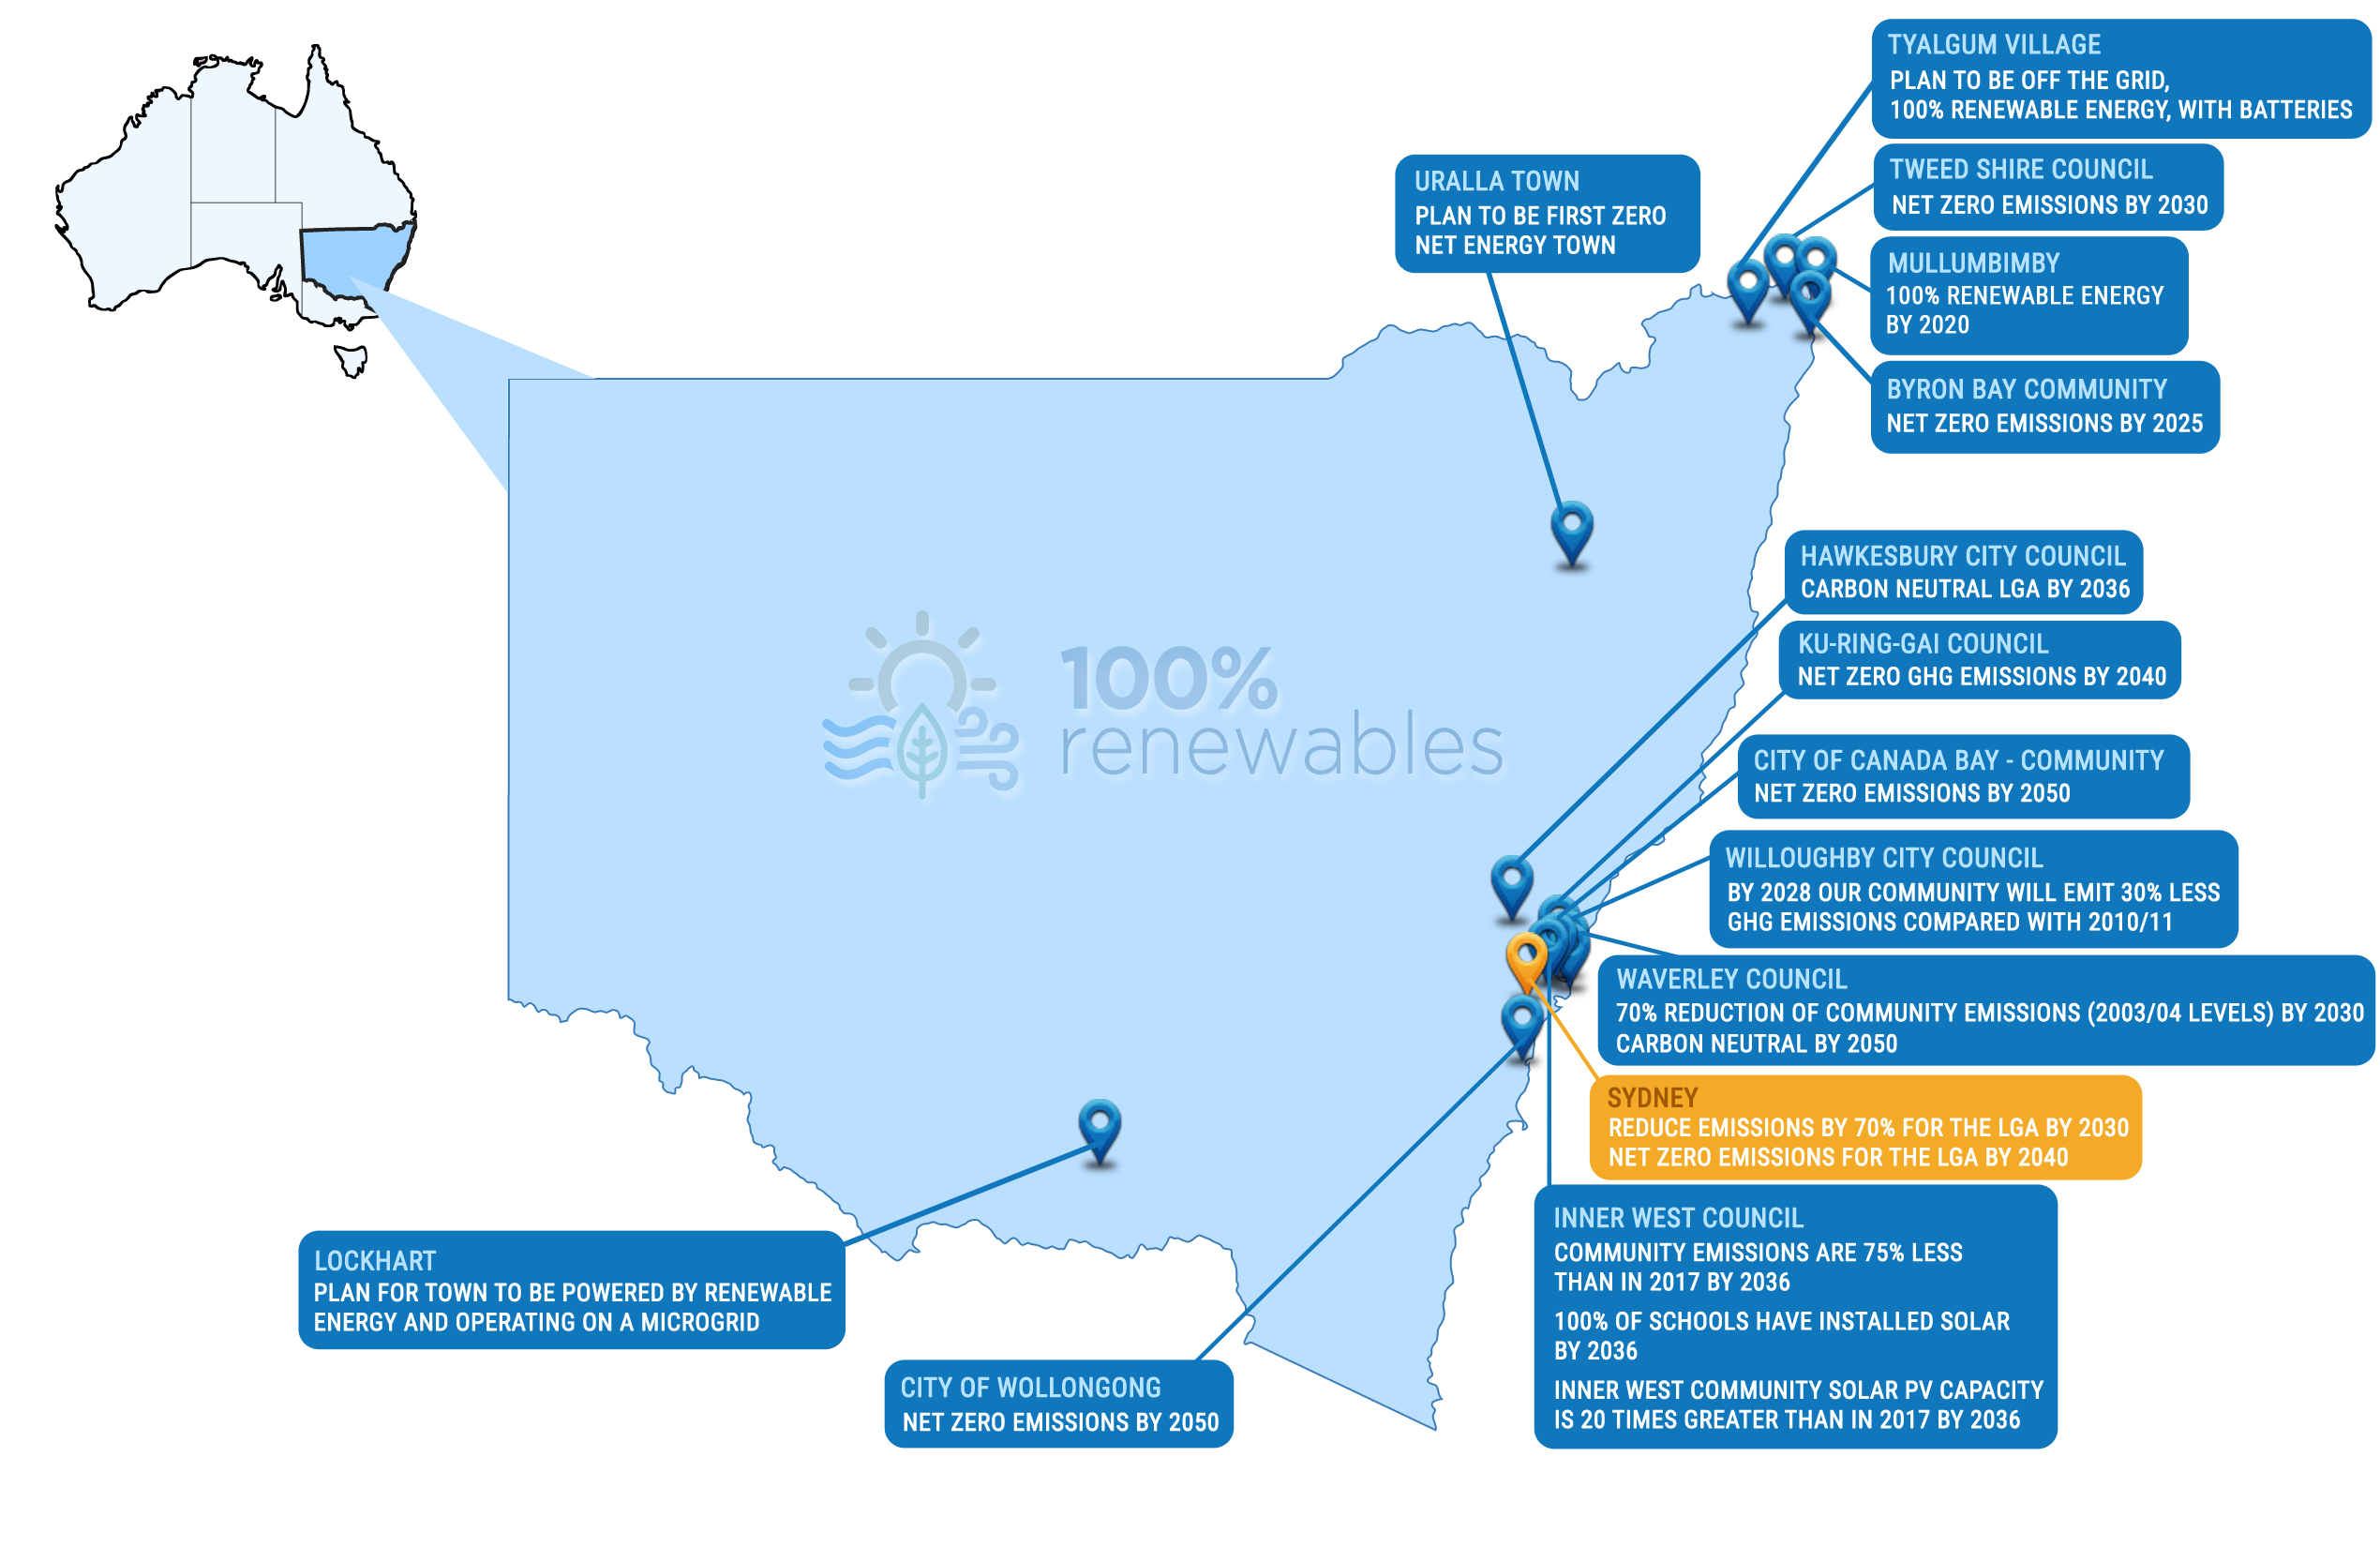 Ambitious renewable energy and carbon commitments by communities in New South Wales and the Australian Capital Territory as at Sep 2020